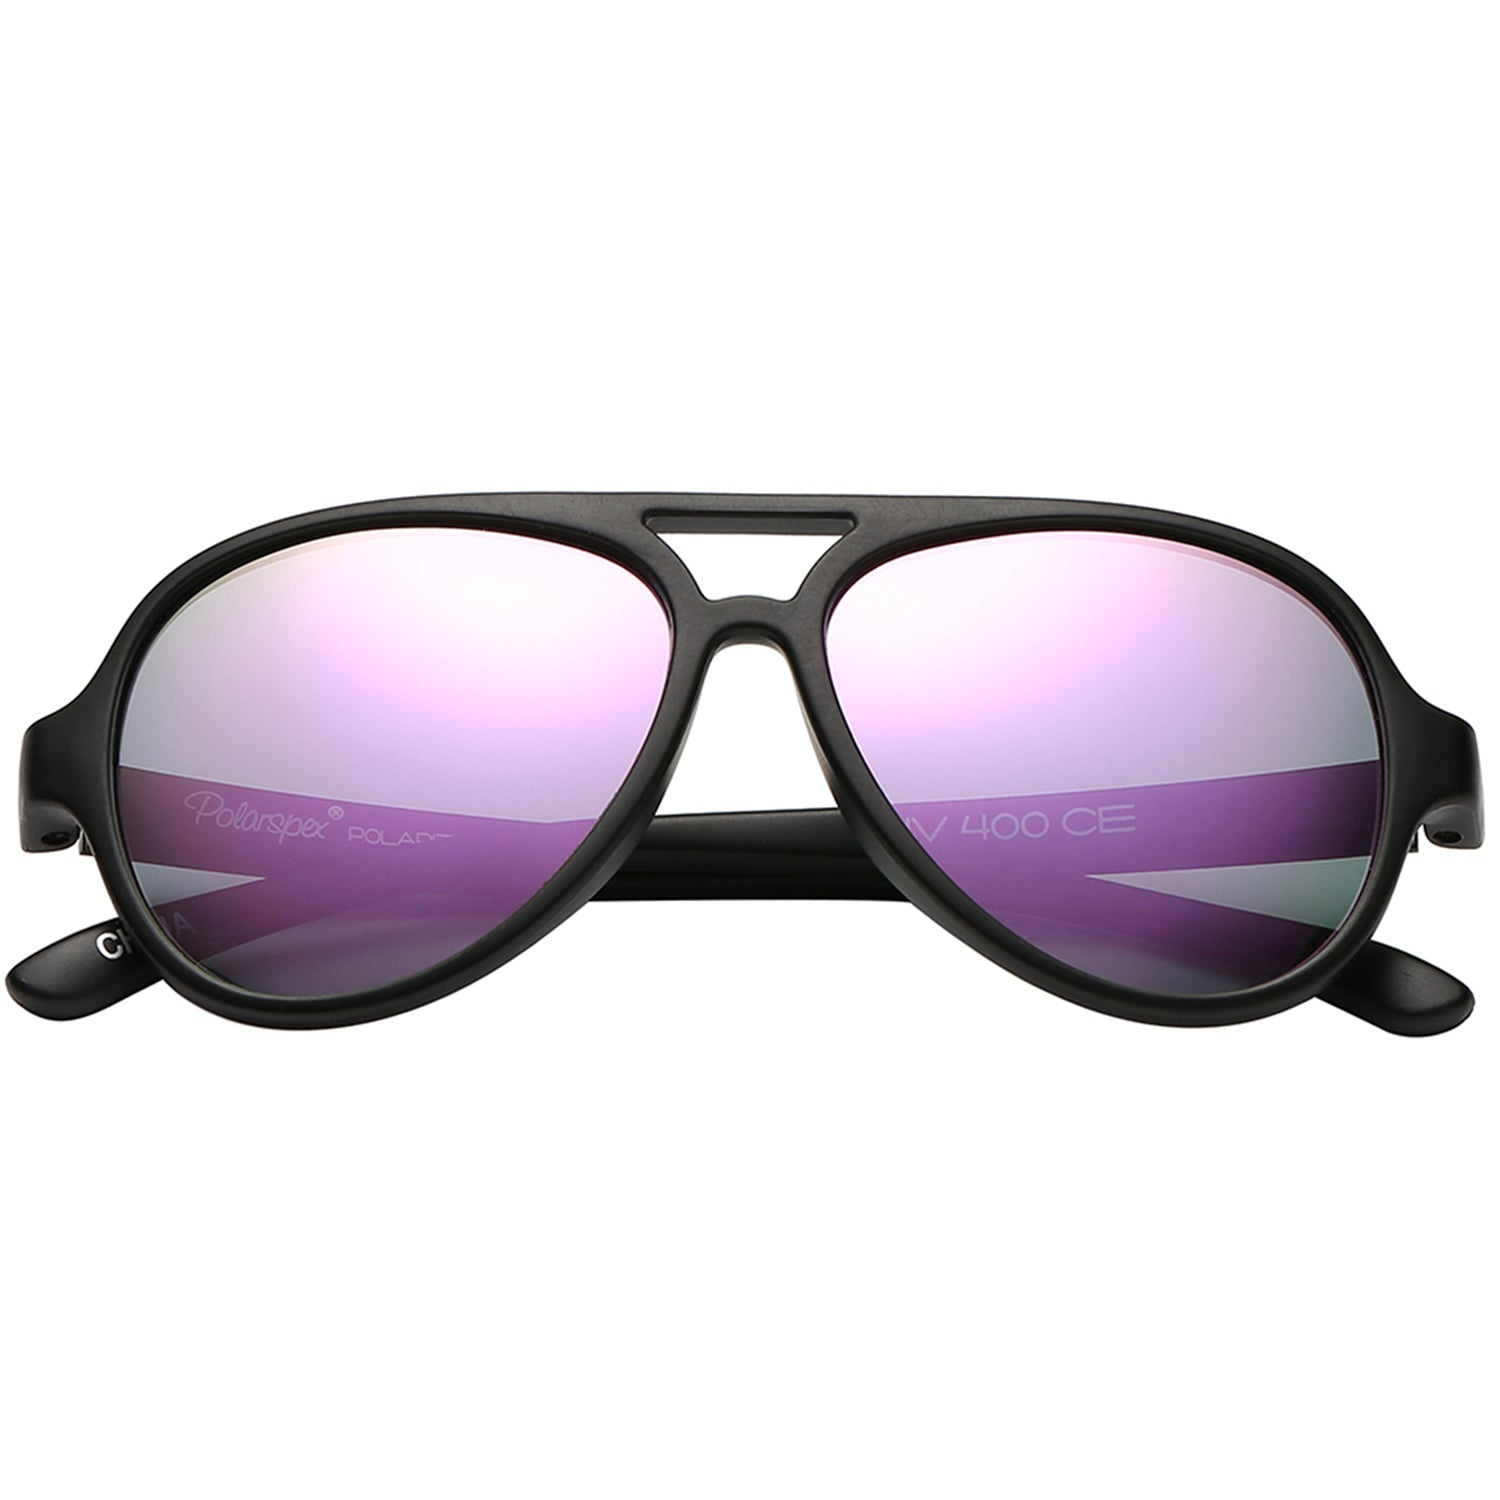 Polarspex Polarized Bendable Aviator Pilot Sunglasses with Matte Black Frames and Polarized Amethyst Lenses for Boys and Girls (Ages 2 - 8)